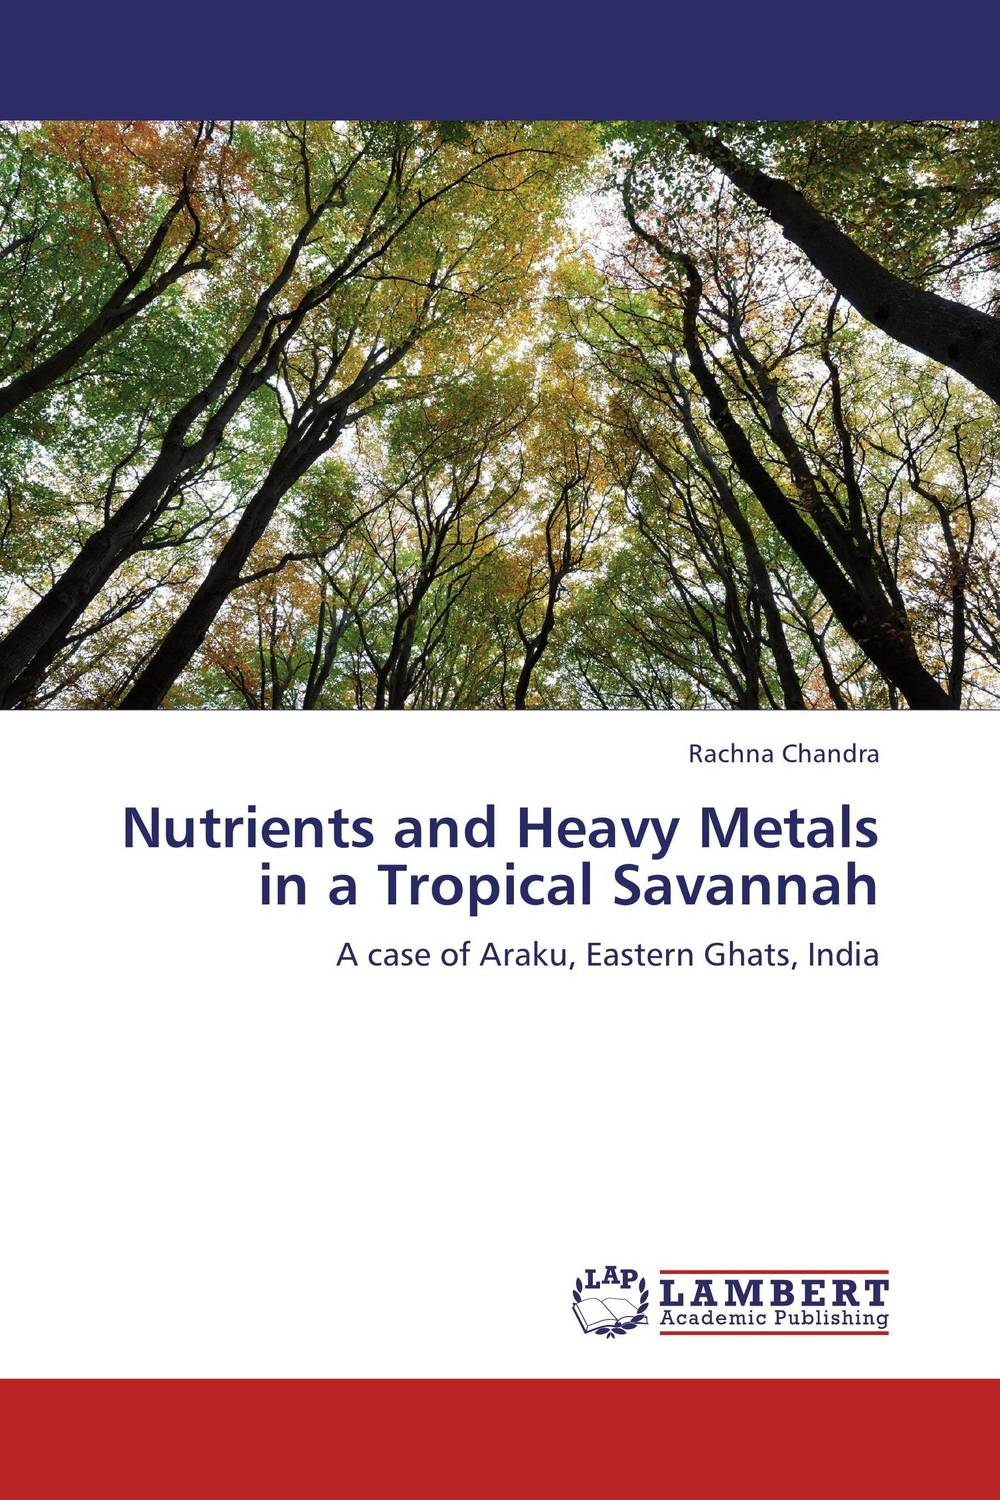 Nutrients and Heavy Metals in a Tropical Savannah marwan a ibrahim effect of heavy metals on haematological and testicular functions